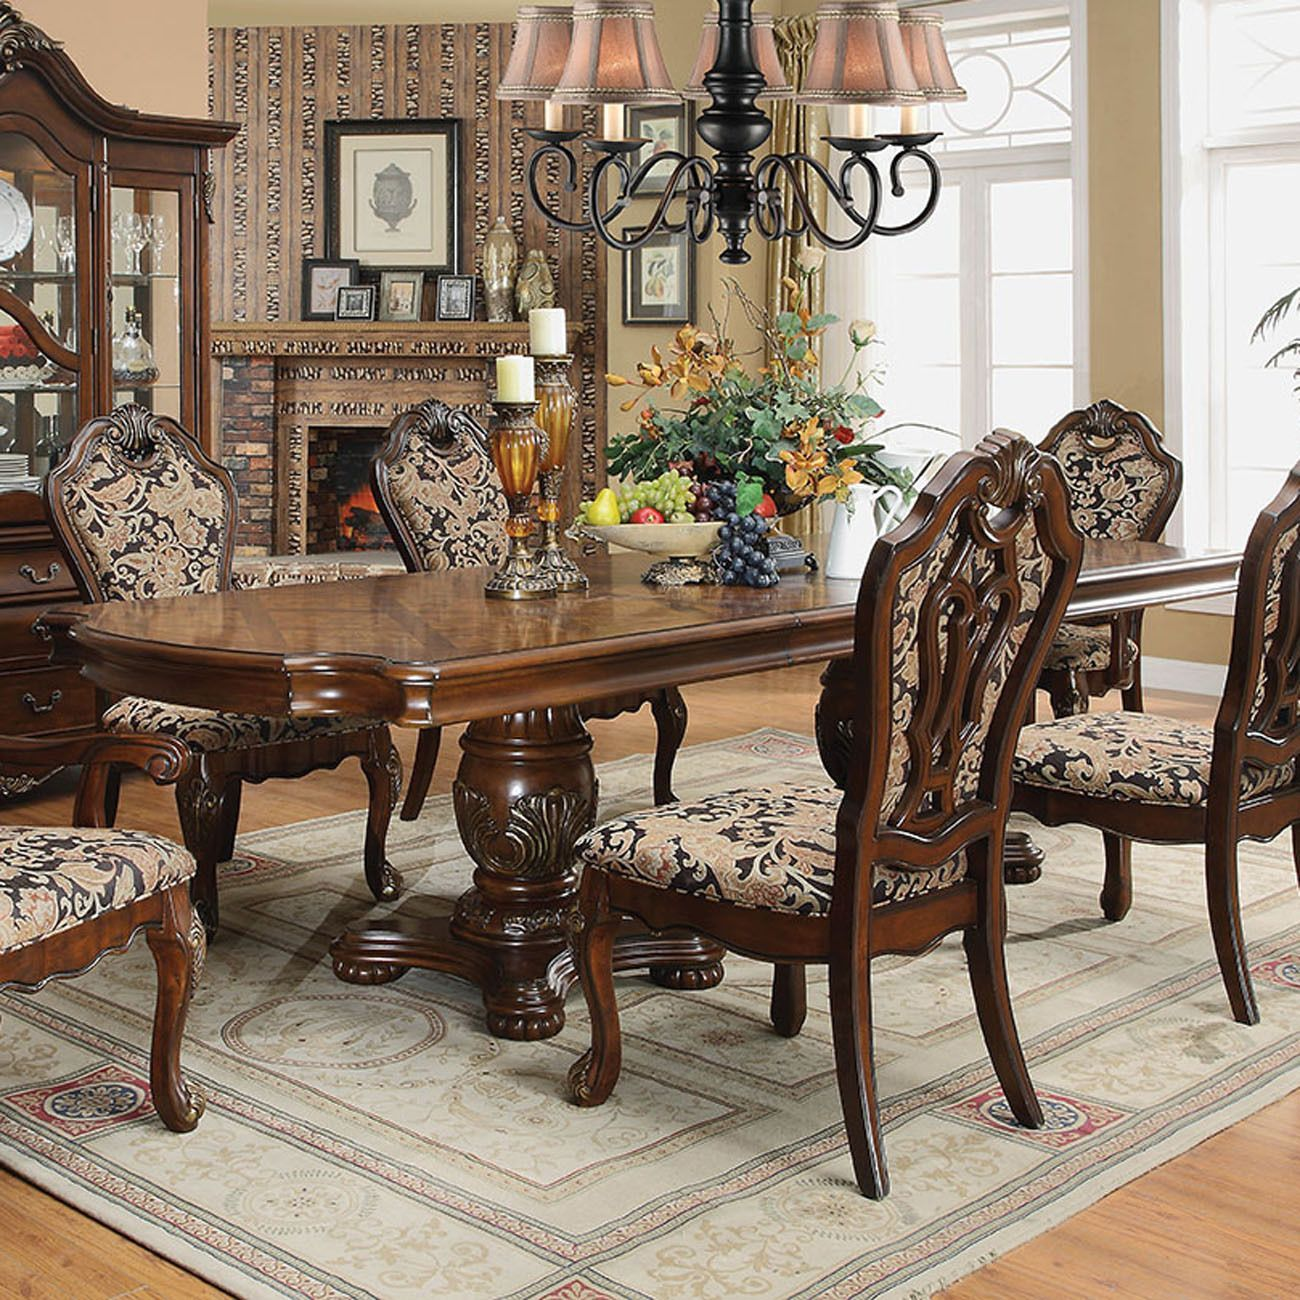 Cleopatra Ornate Traditional Cherry Formal Dining Room: Furniture Of America Mallory Formal Cherry (Red